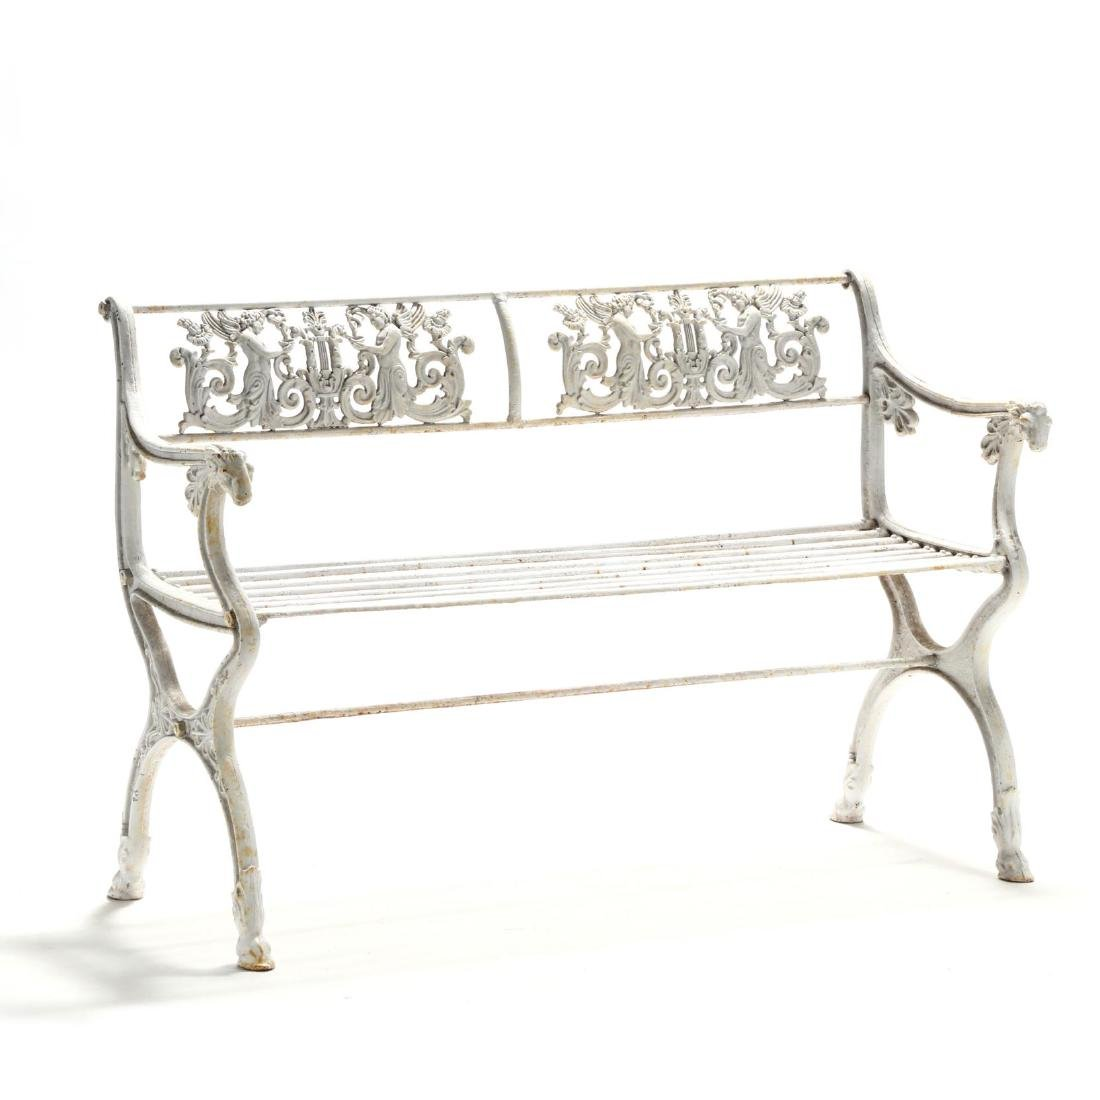 Neoclassical Style Cast Iron Garden Bench